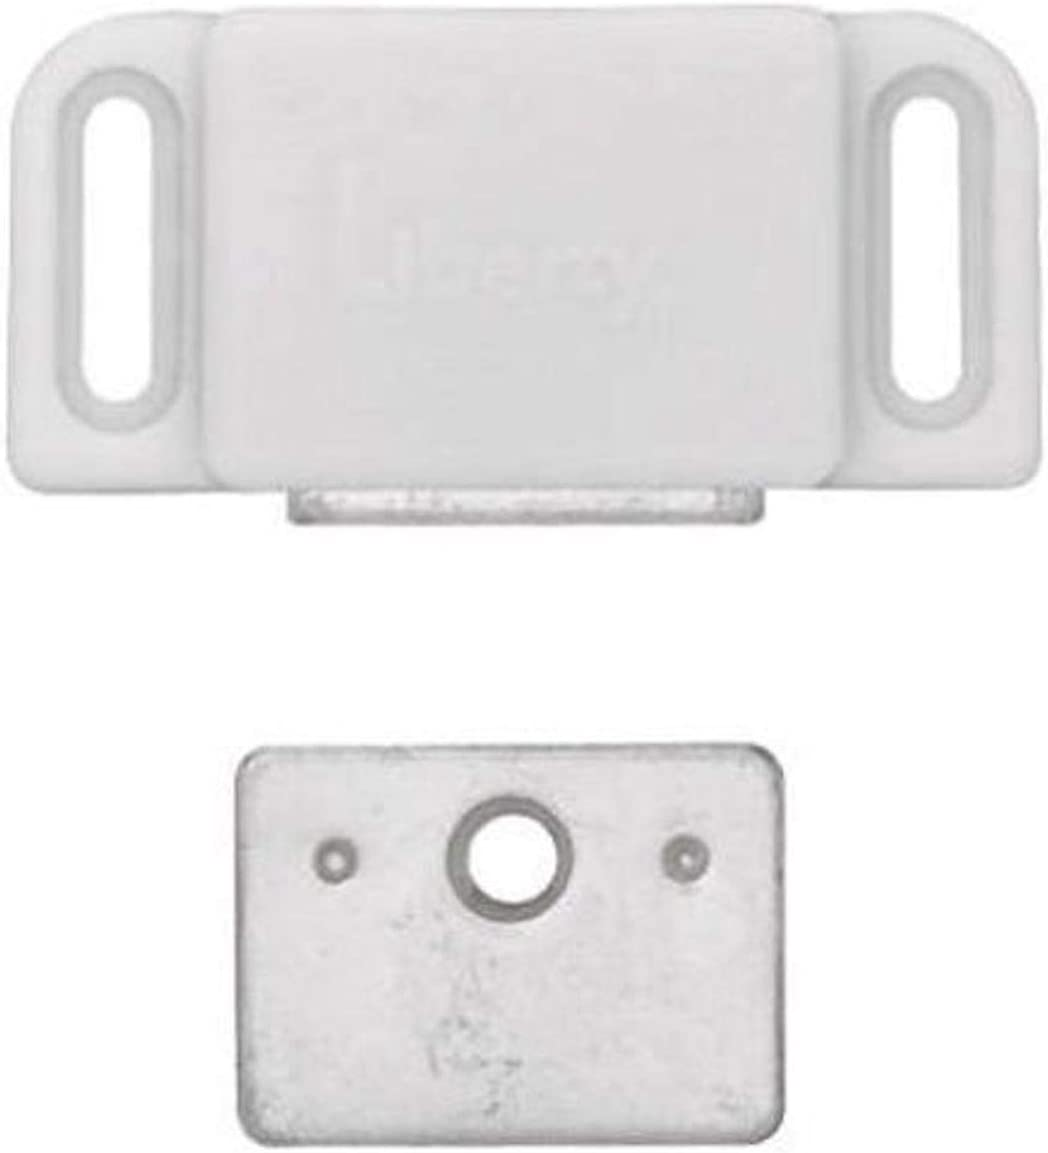 Liberty C080X0L-W-U Heavy Duty Baltimore Mall Sale special price Magnet Catch Strike 2-Pack with